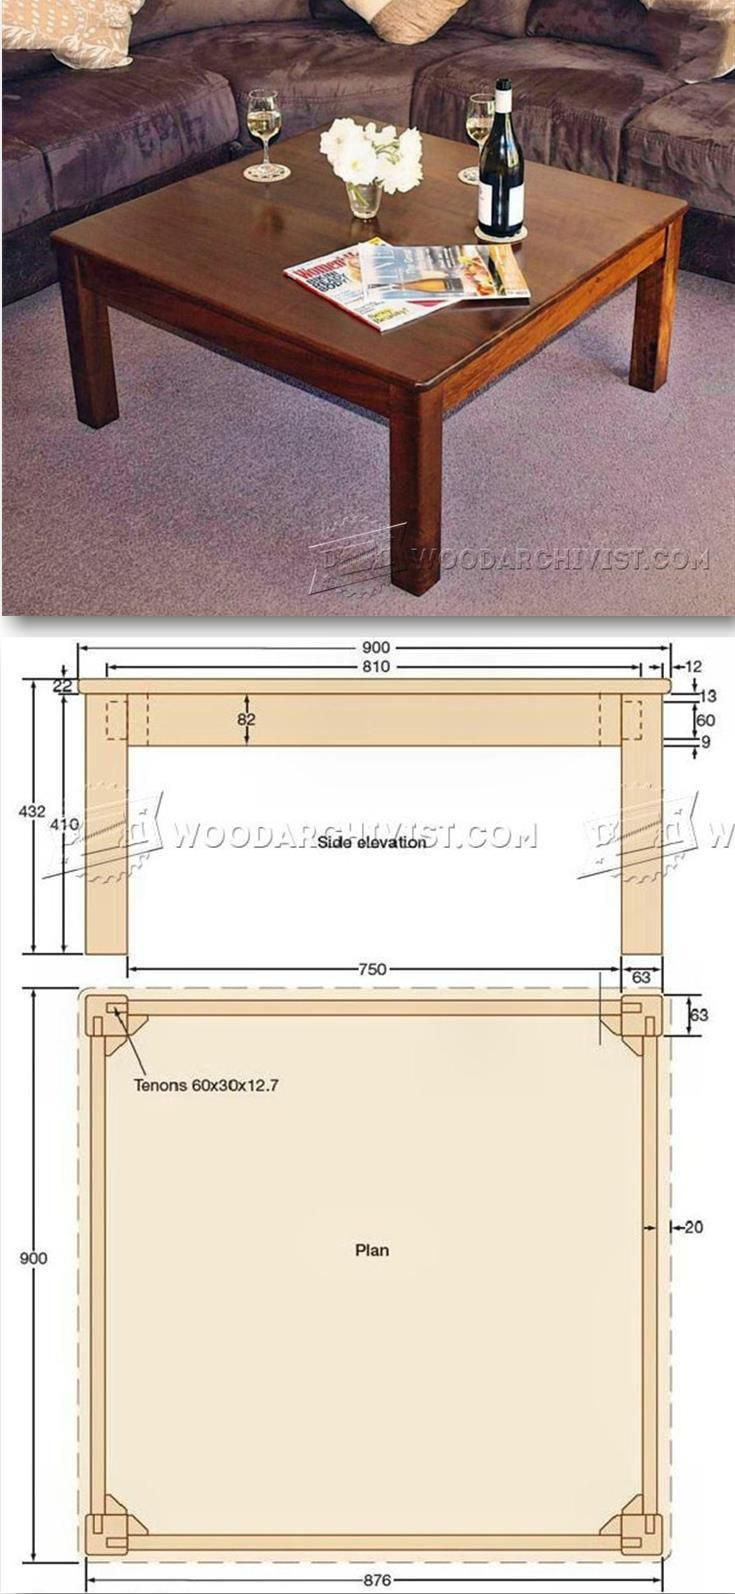 Square Coffee Table Plans - Furniture Plans and Projects ...